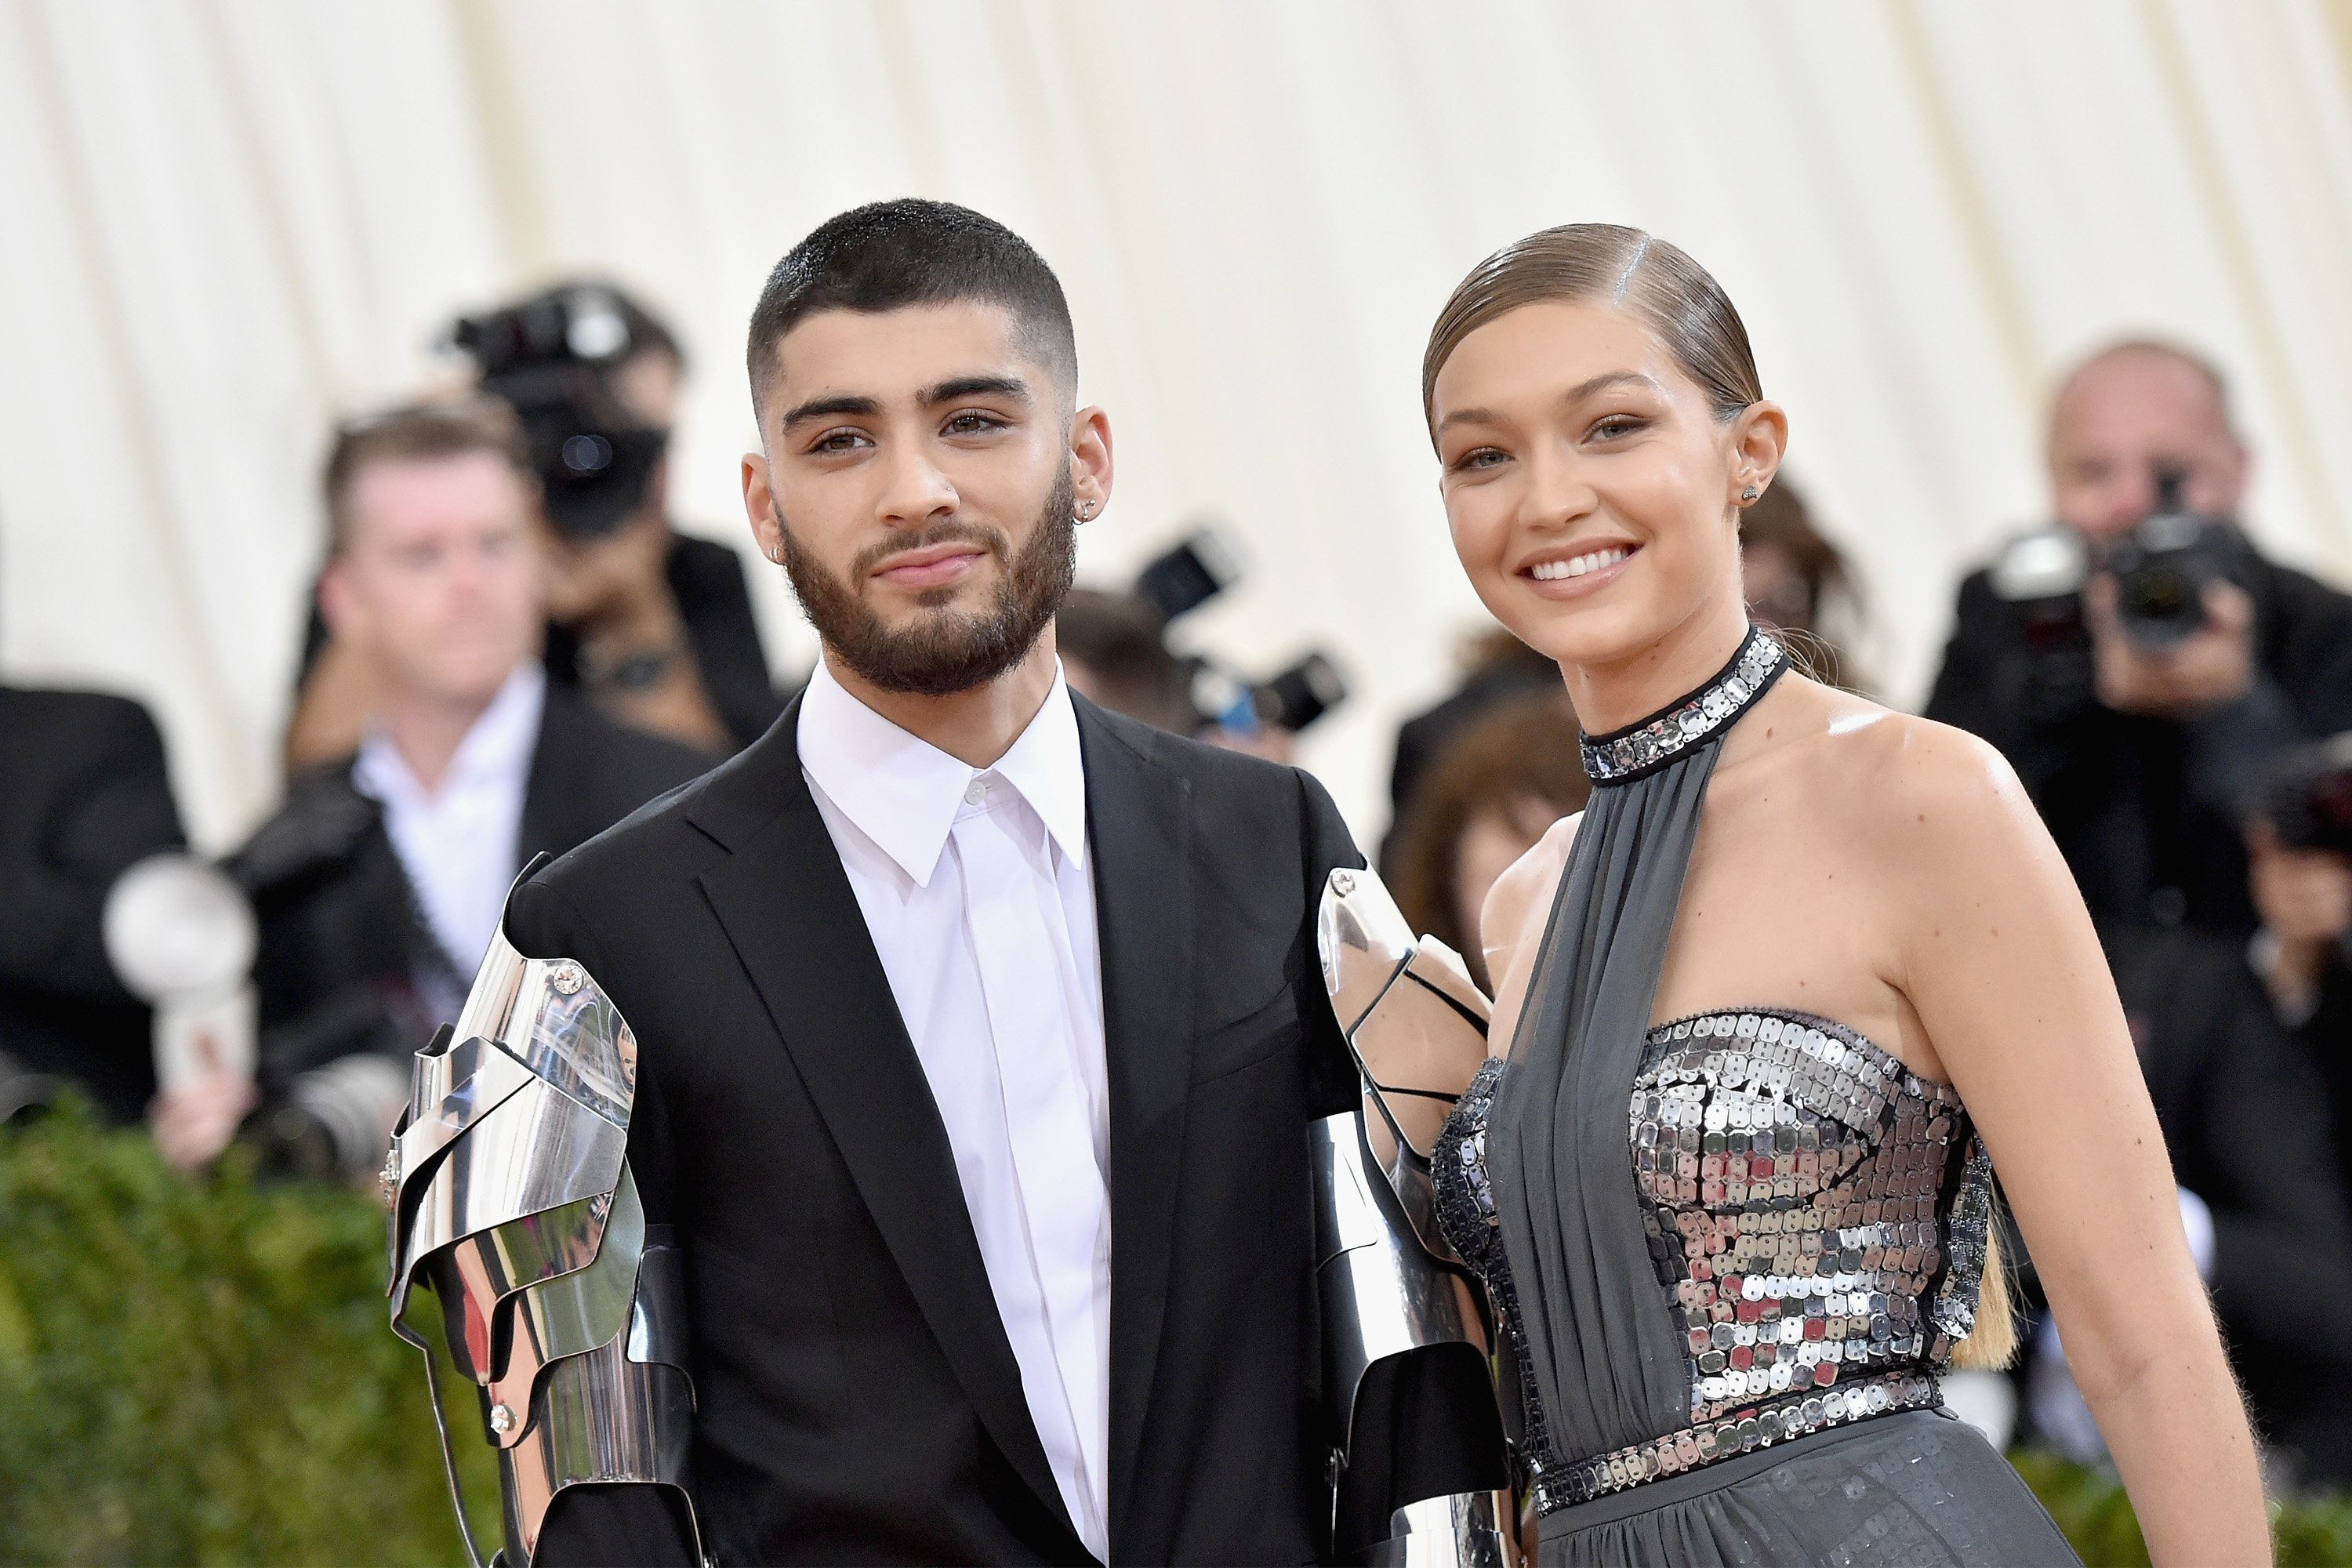 Gigi Hadid And Zayn Malik Announce Their Breakup To Followers